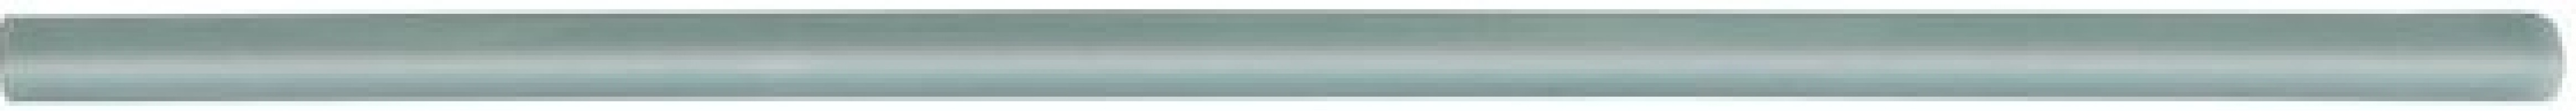 Бордюр Neri ADNE5636 Bullnose Trim Sea Green 0.85x20 Adex